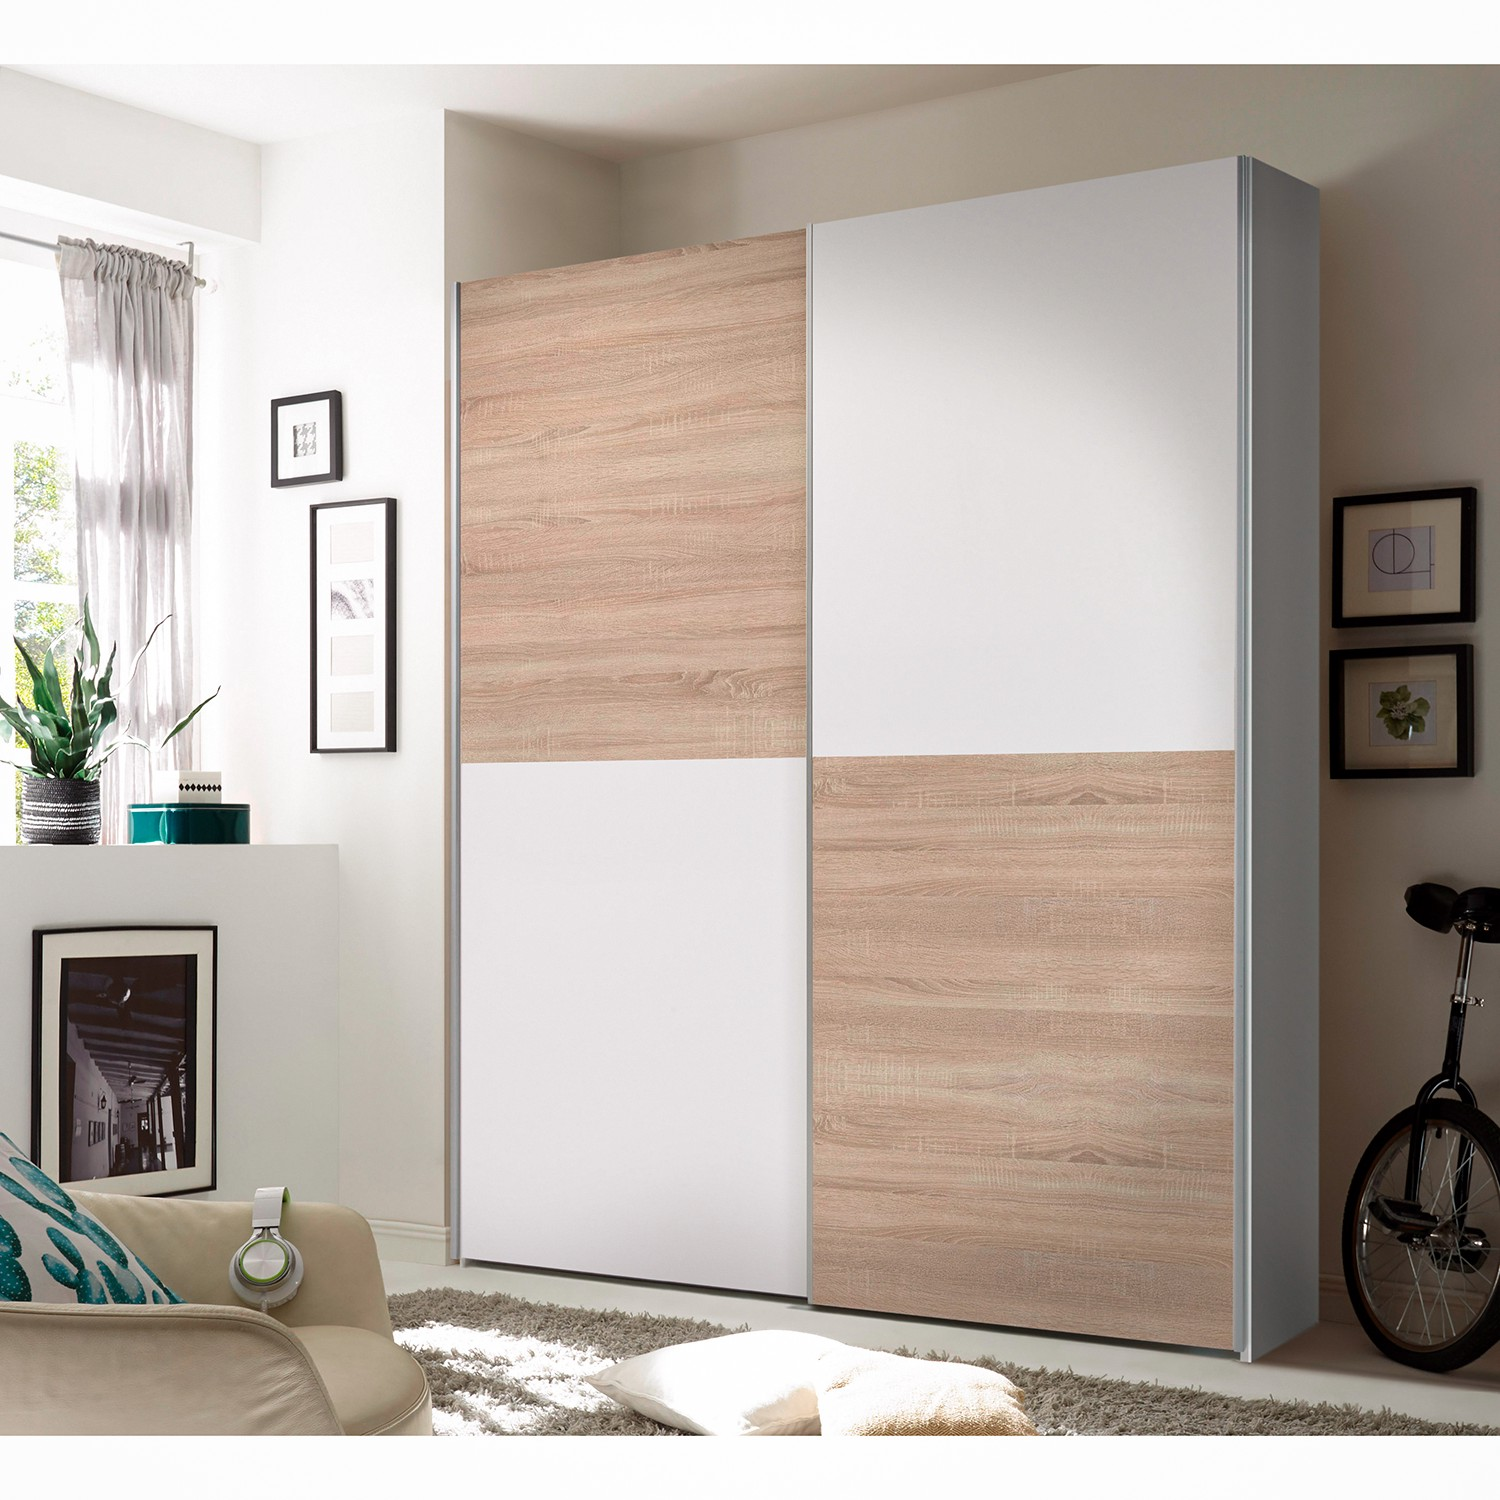 Armoire portes coulissantes Niceville II